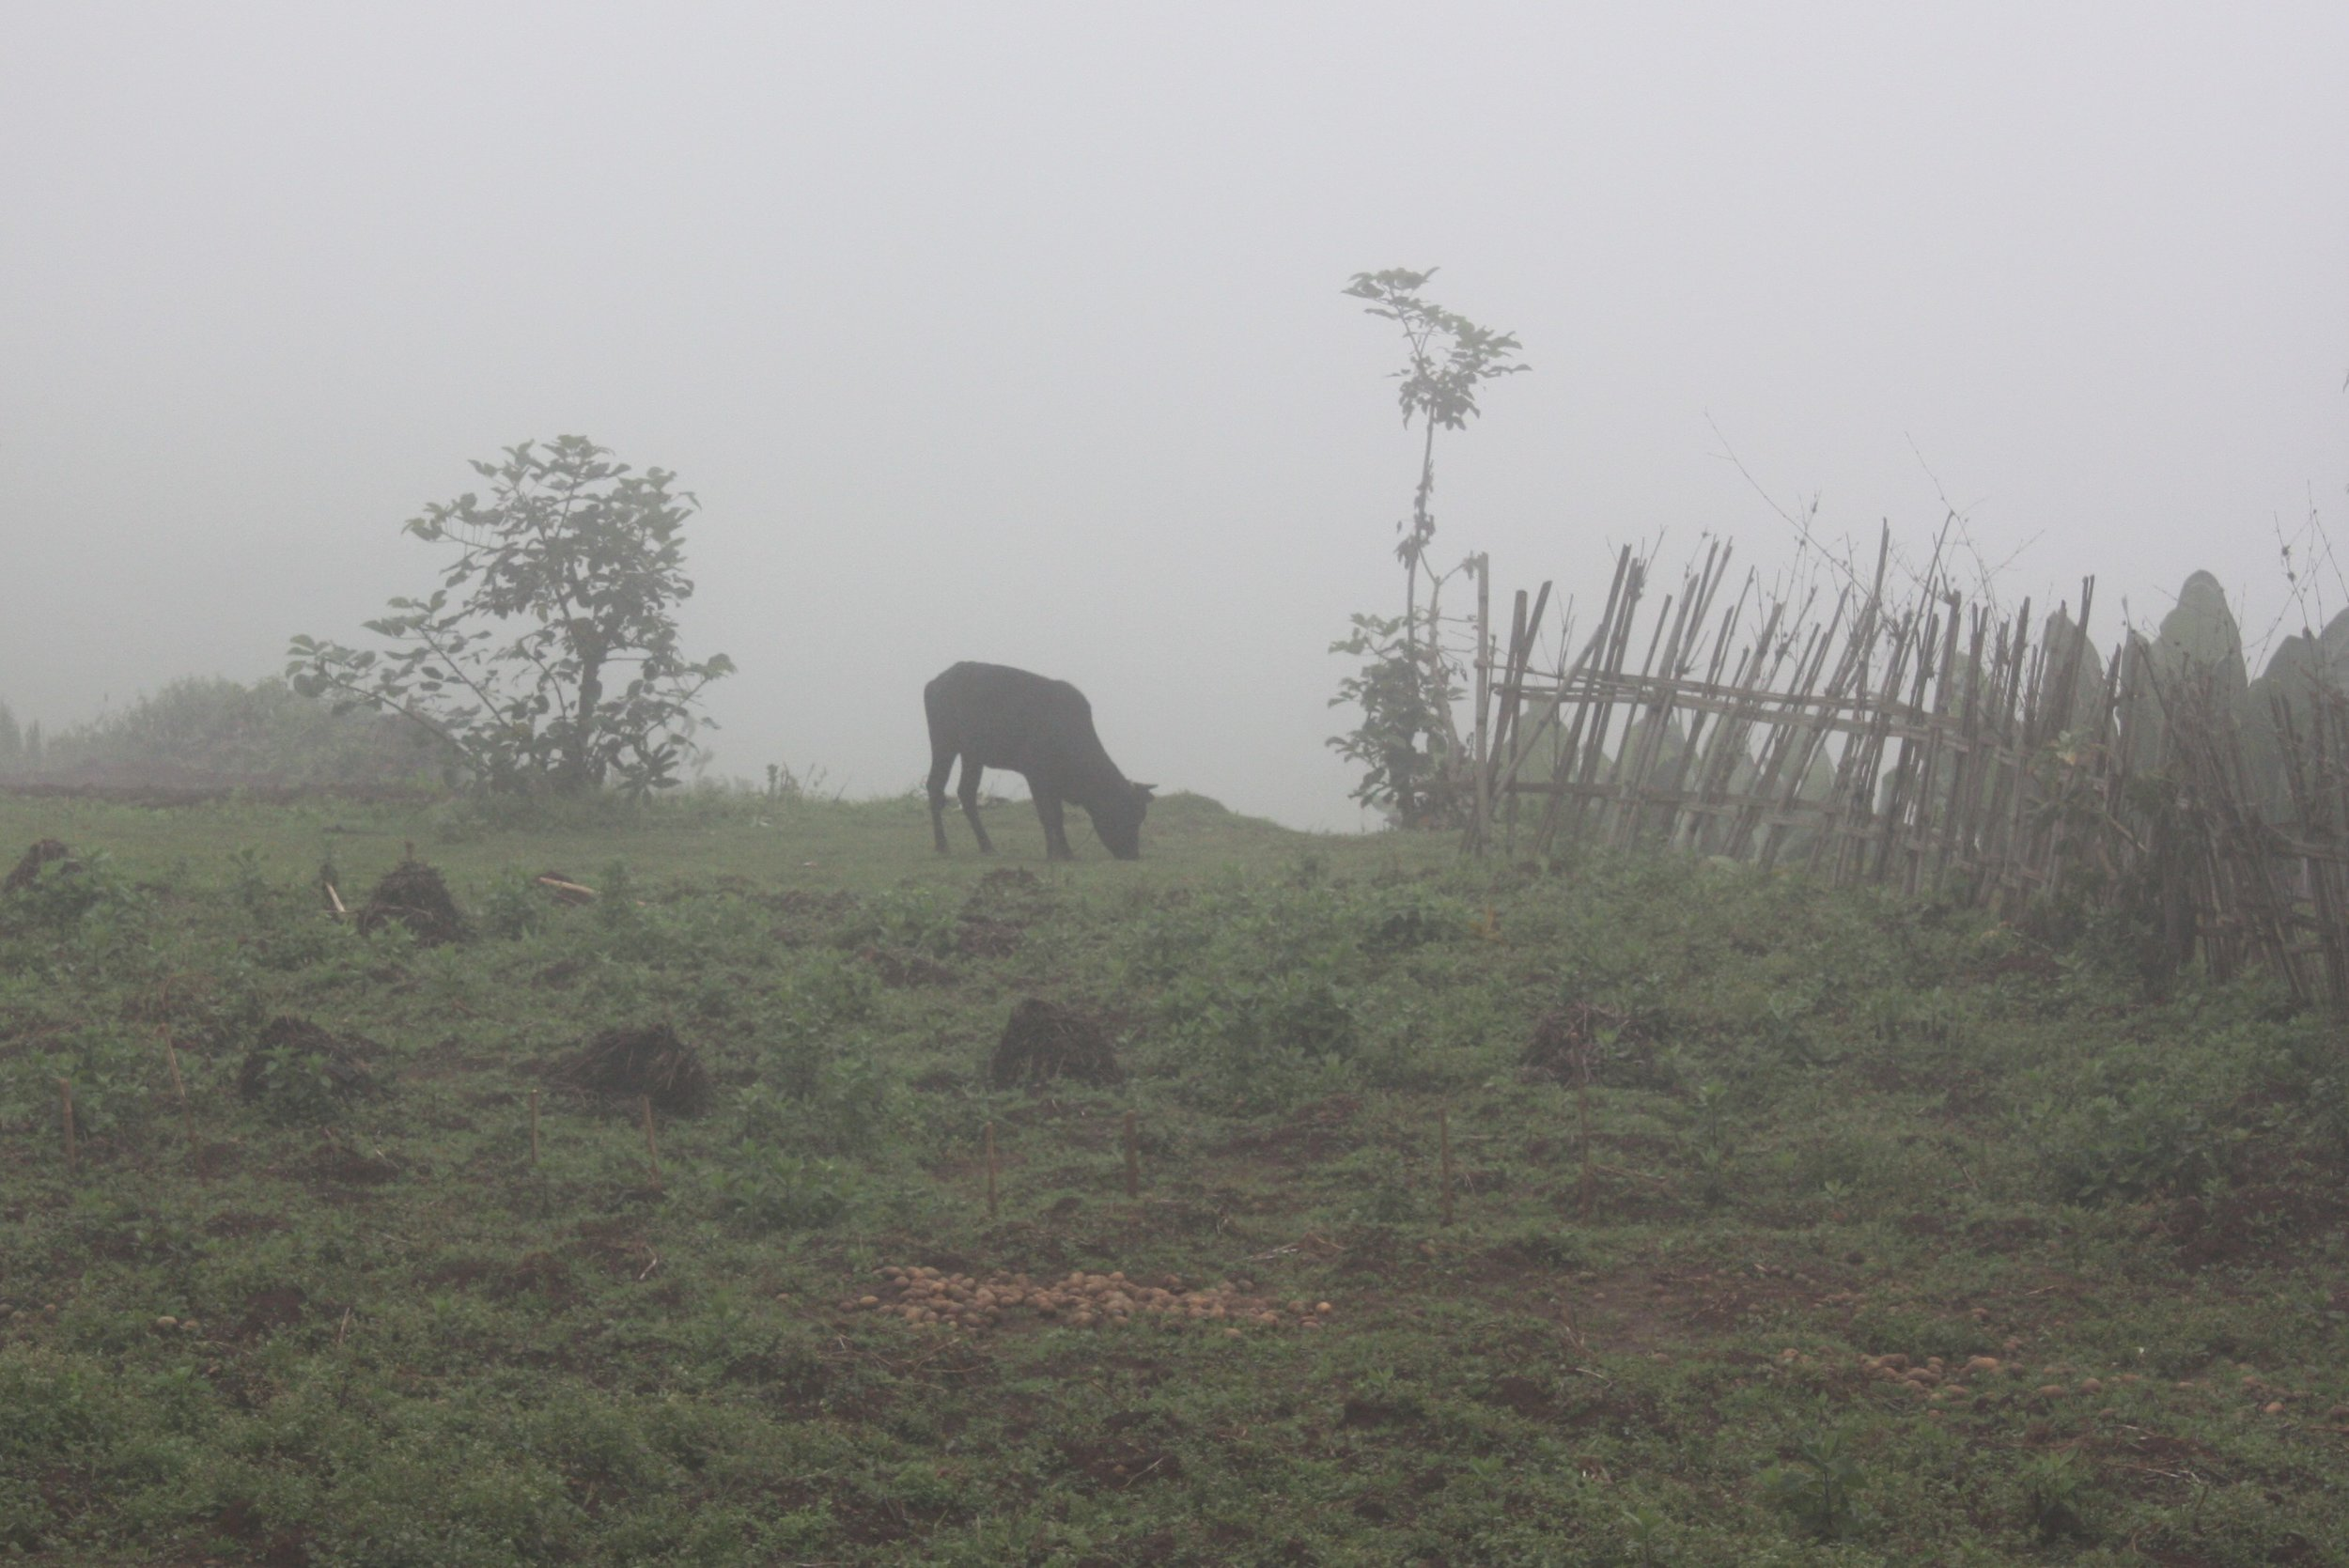 Cow-Grazing-in-the-Mist.jpg